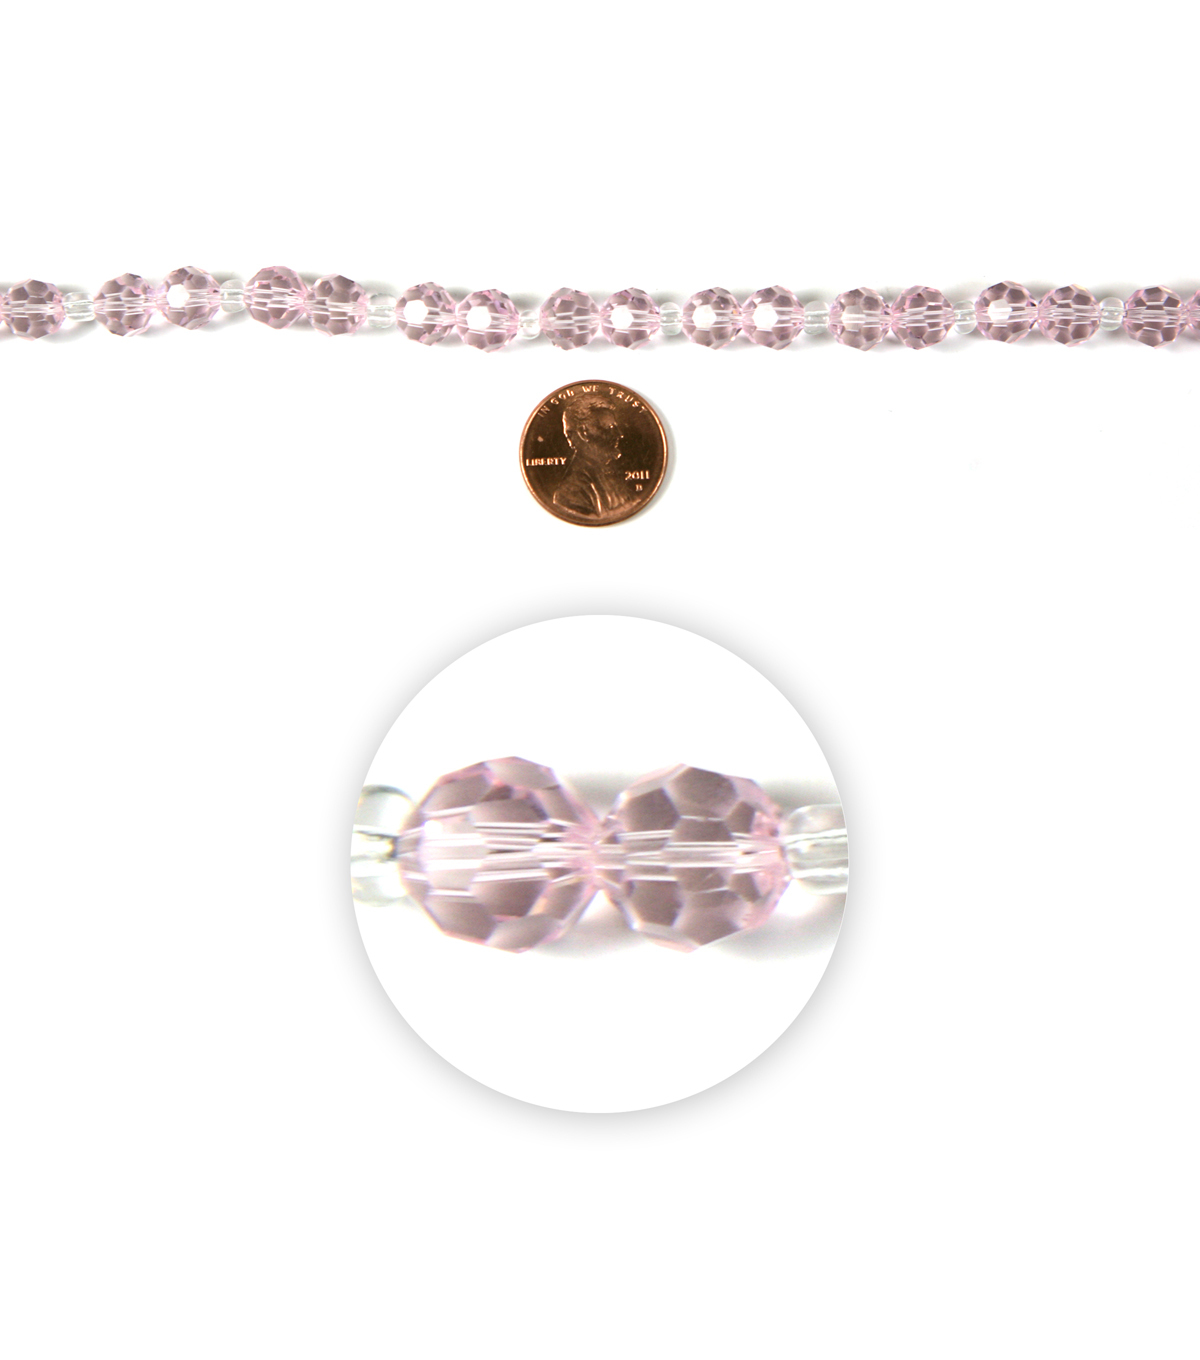 Blue Moon Strung Machine Cut Crystal Beads,Round,Light Pink,Facetted